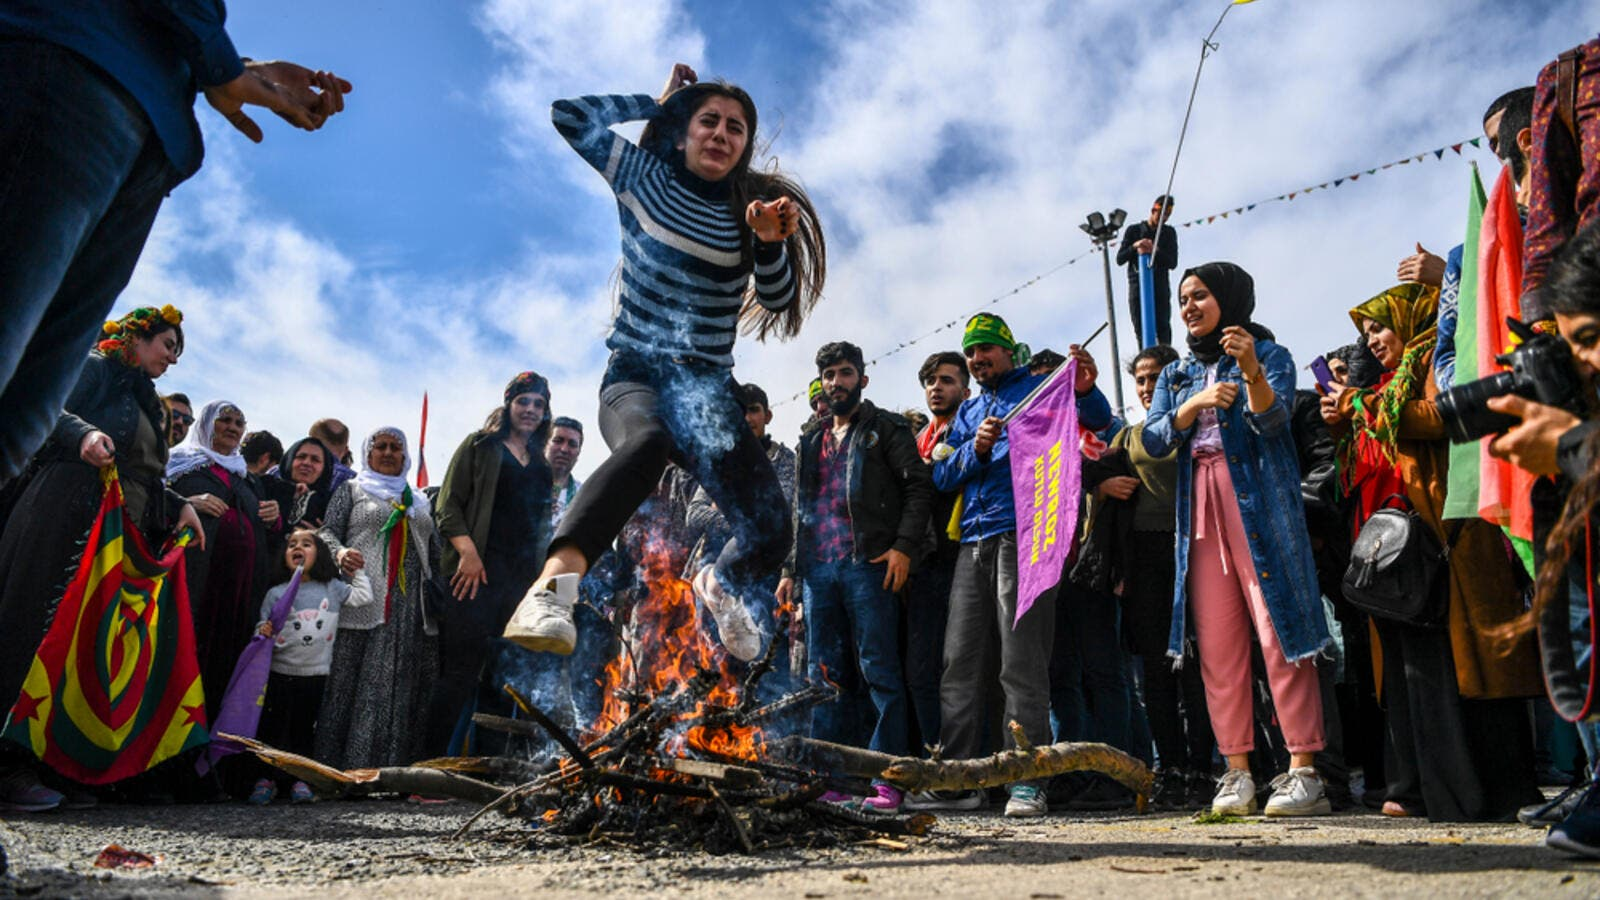 Kurds gathered to celebrate Newroz (Shutterstock)